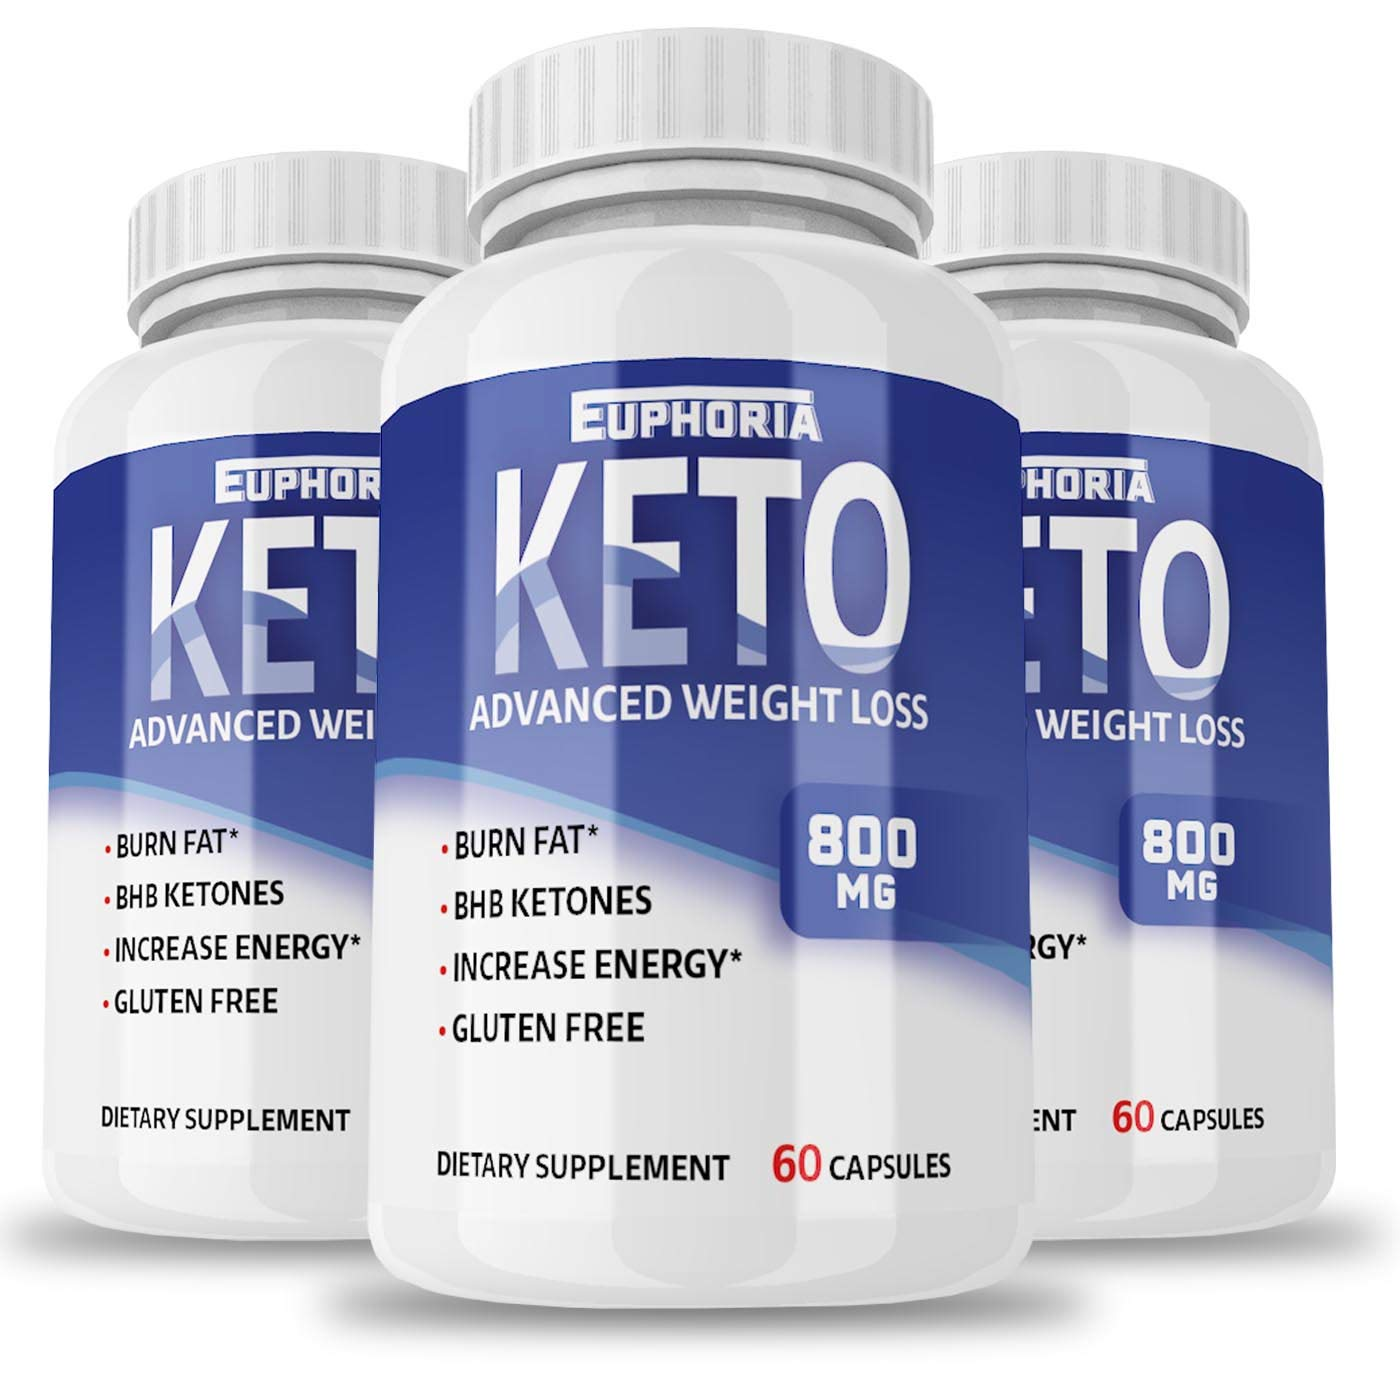 Keto Pills from Shark Tank - 3 Pack - Ketogenic Fat Burner - for Women & Men - Keto Capsules - Keto Diet - Weight Loss Supplements - May Help Burn Fat Fast - Carb Blocker - Best Keto Pills